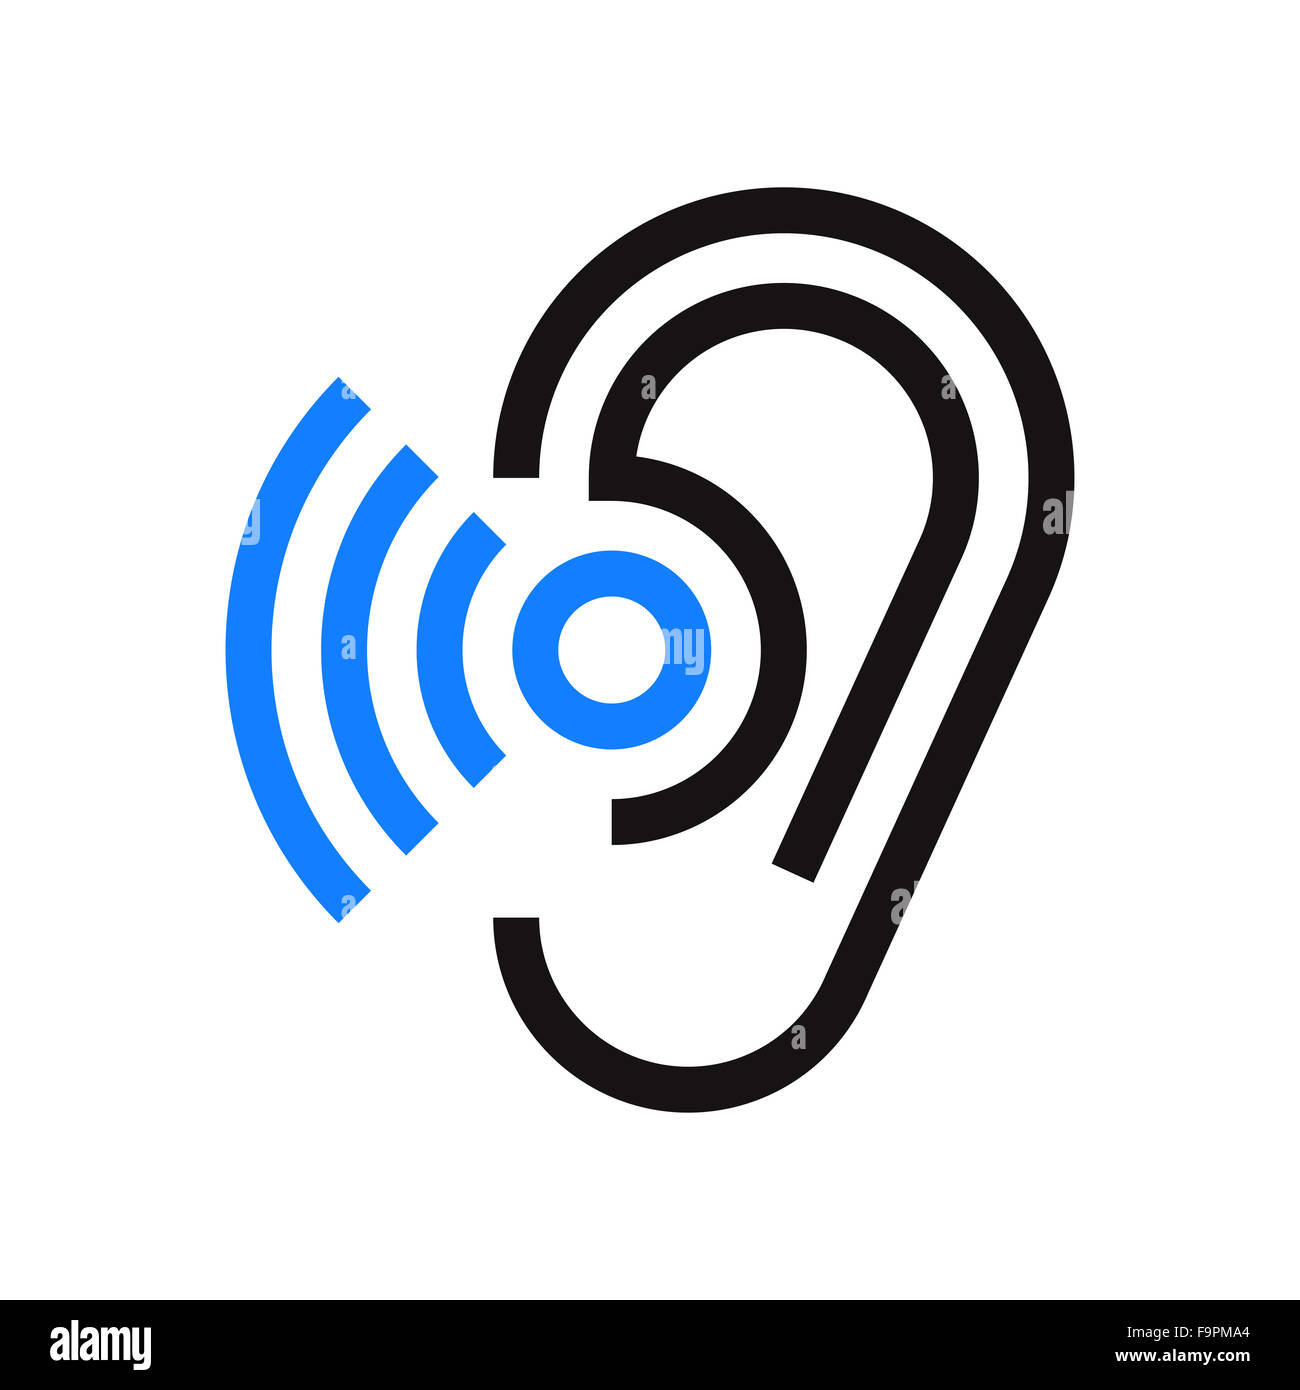 Hearing Aid On Ear Icon Stock Photos Hearing Aid On Ear Icon Stock